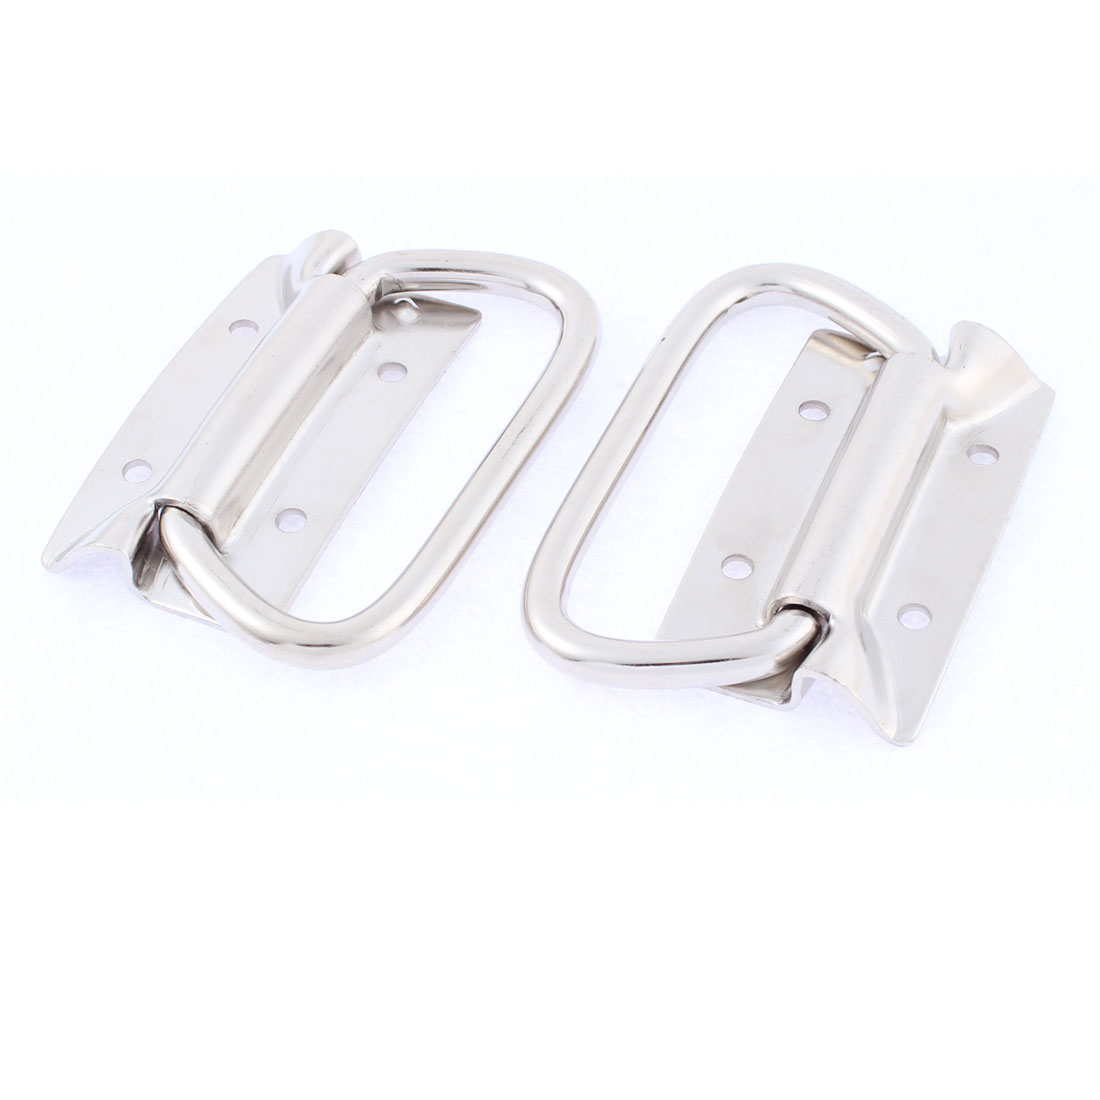 Dresser Cupboard Door Pull Handle Silver Tone 2Pcs